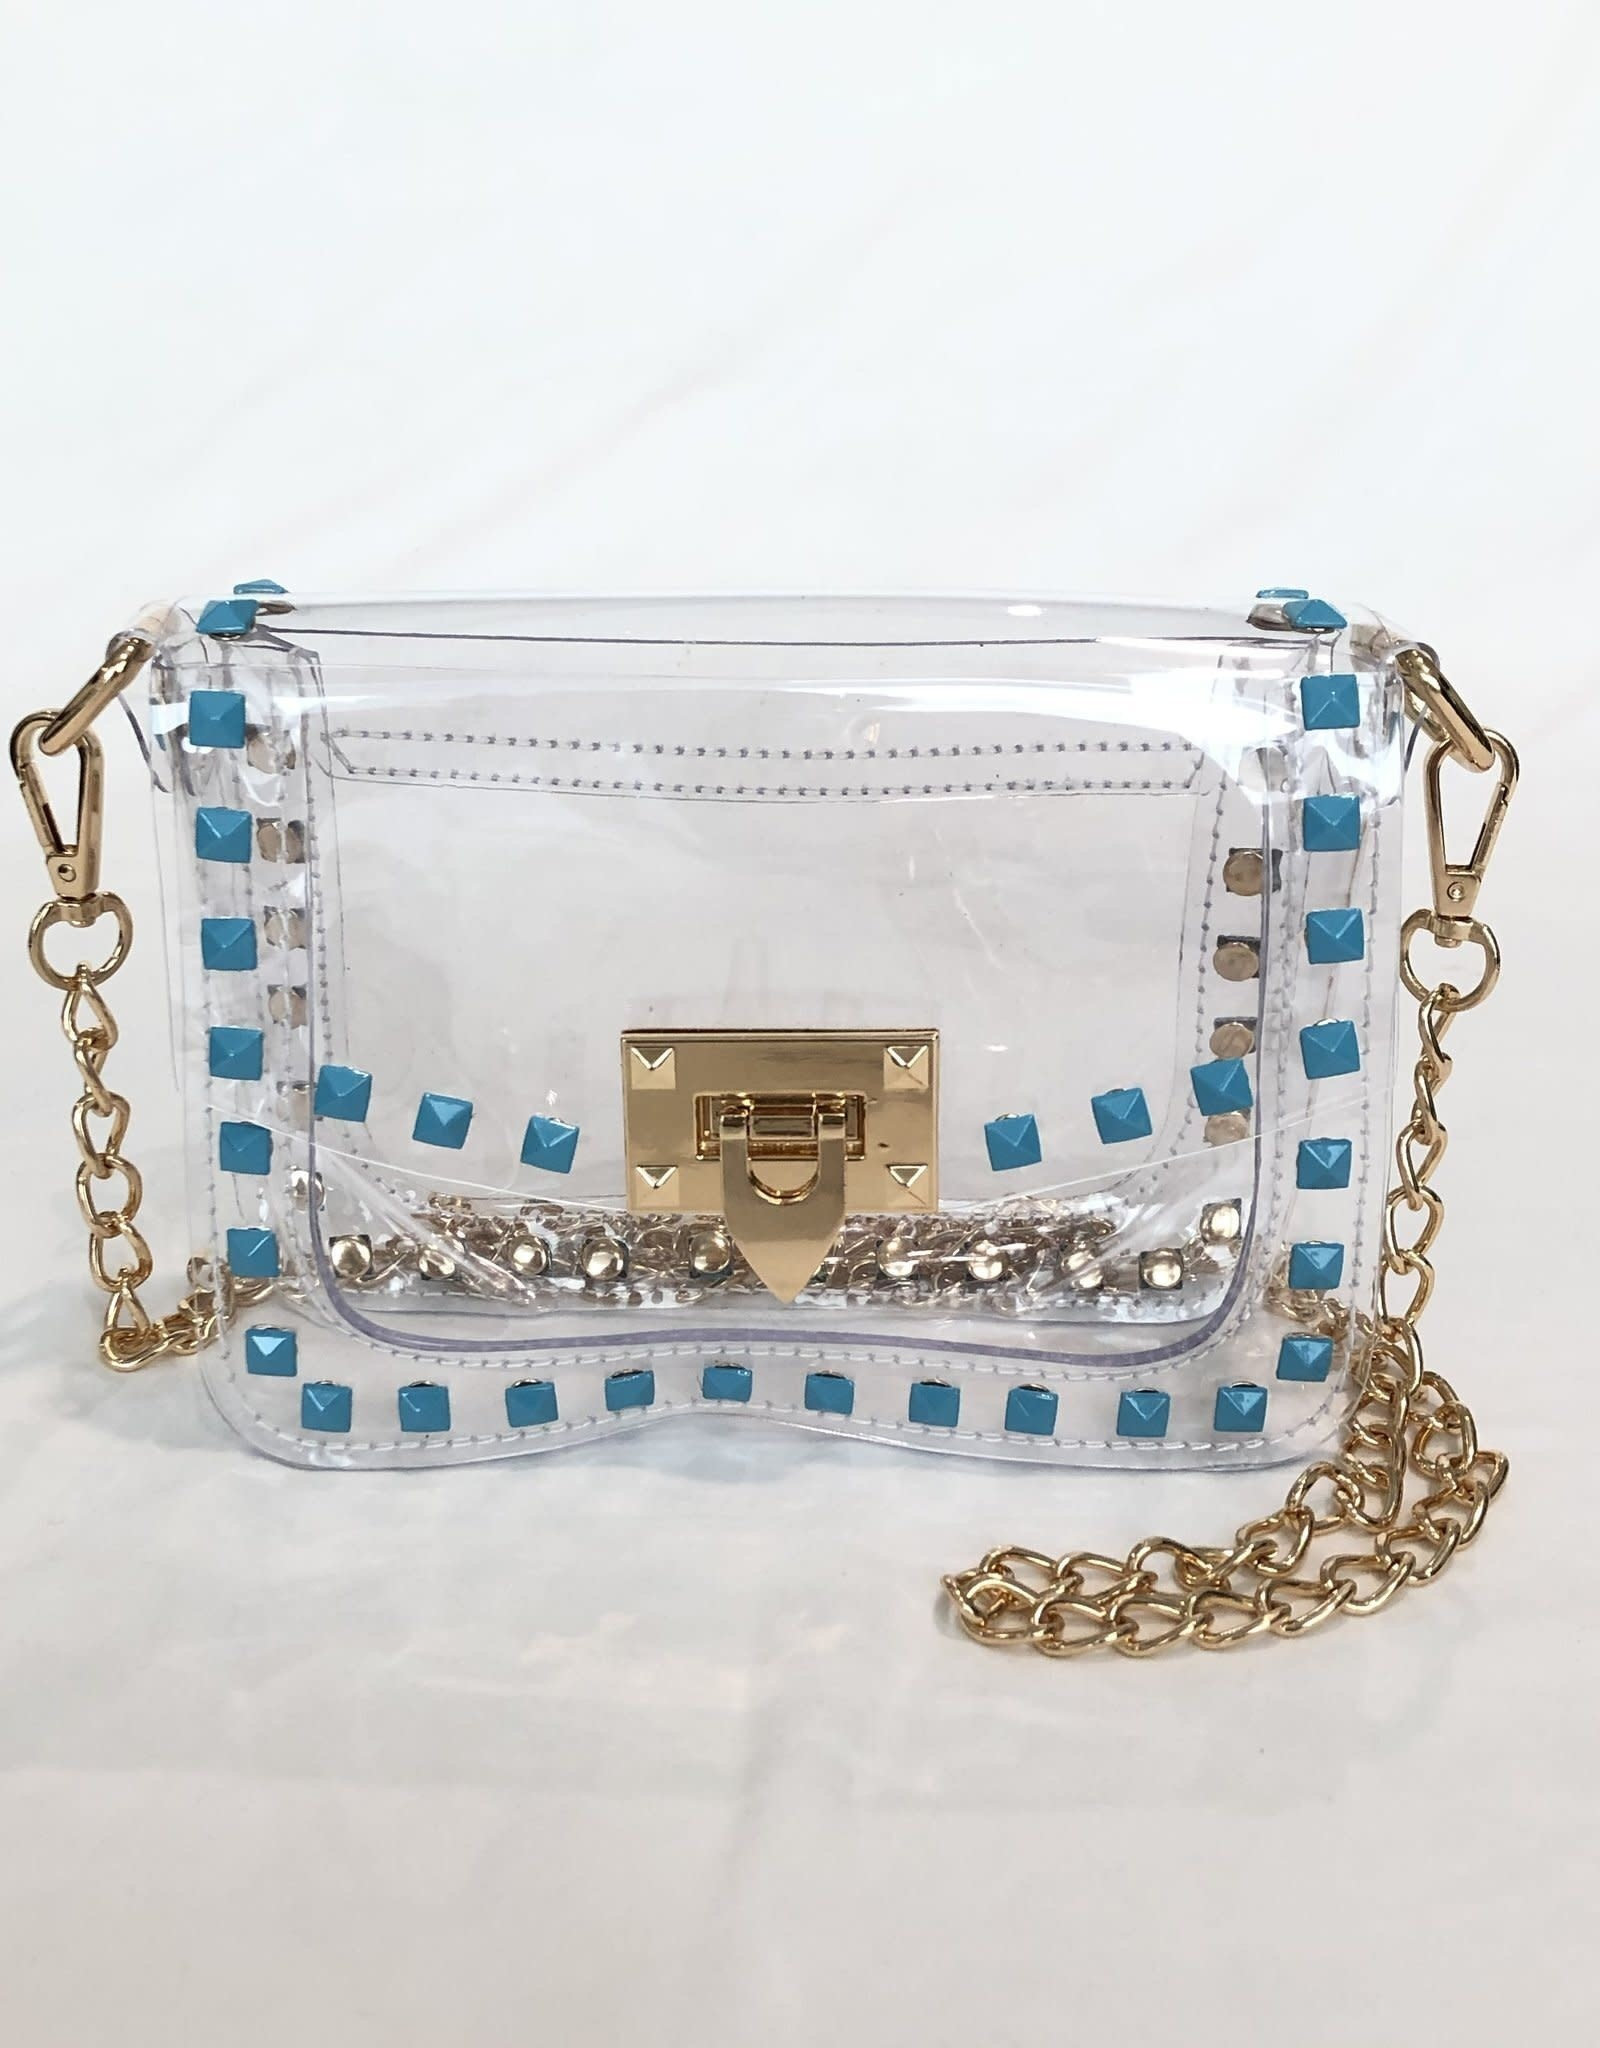 Clearly Handbags Clearly Handbags The Jackie Turquoise Stud and Gold Detailing